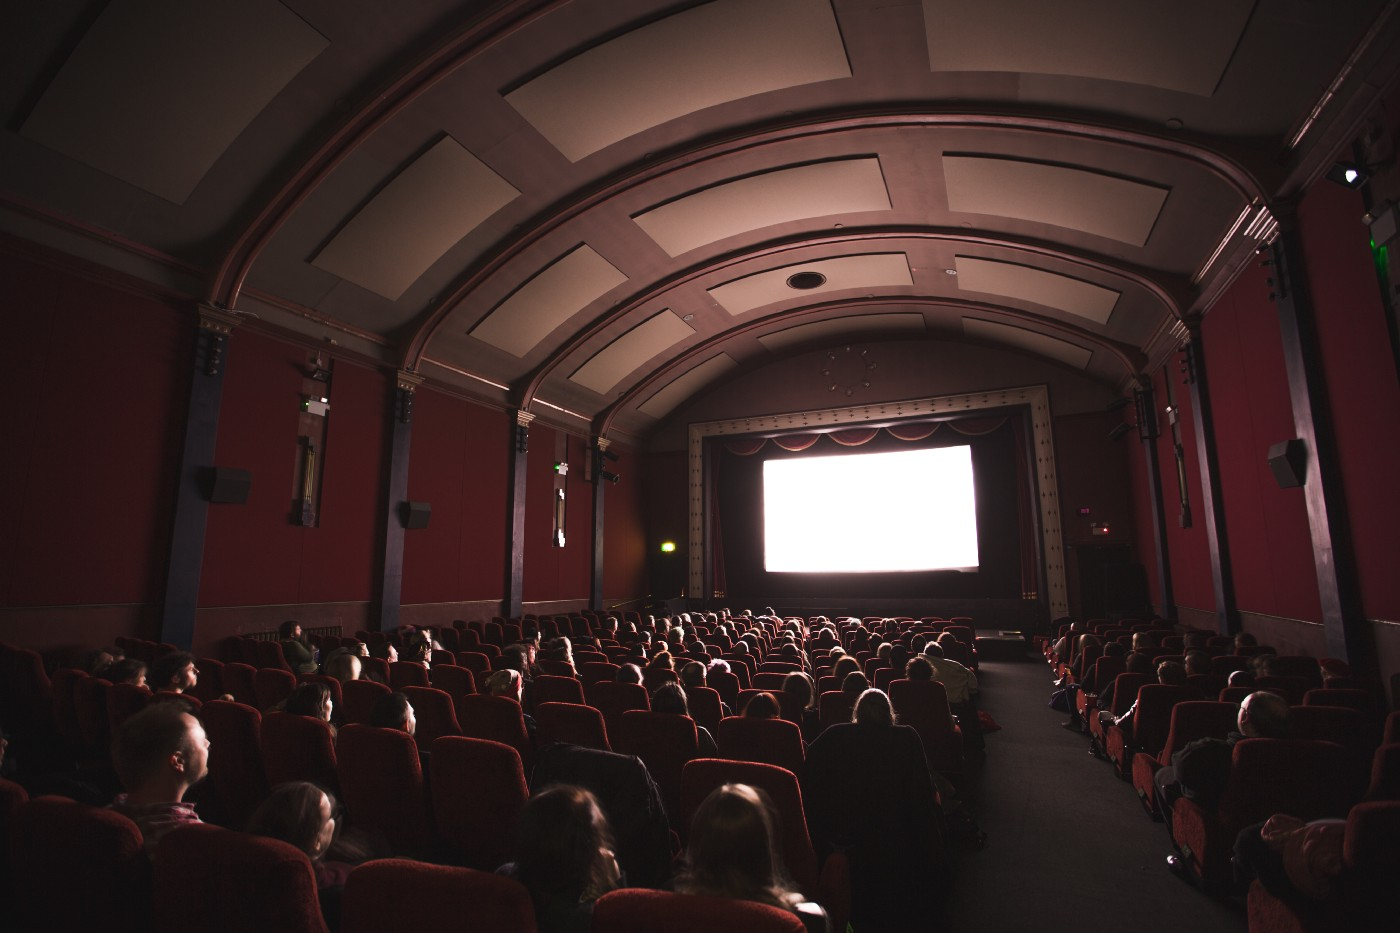 Large theater with audience